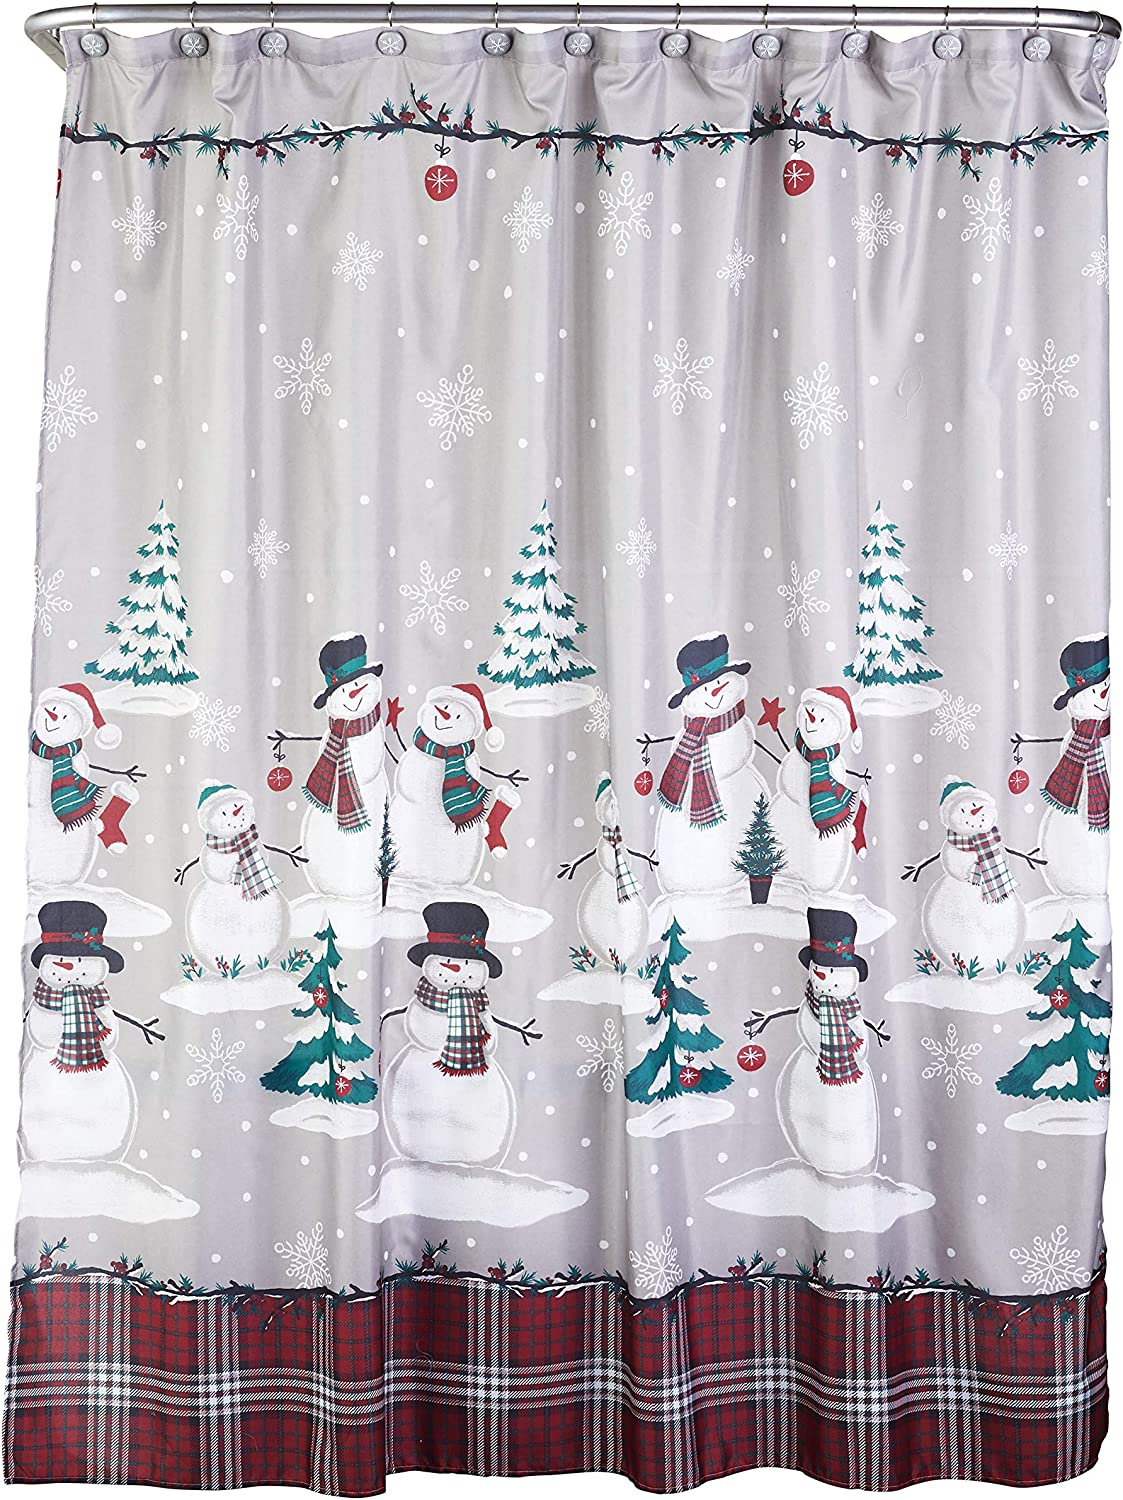 SKL OFFicial mail order HOME by Saturday Credence Knight Ltd. Curtain Snowman an Shower Plaid